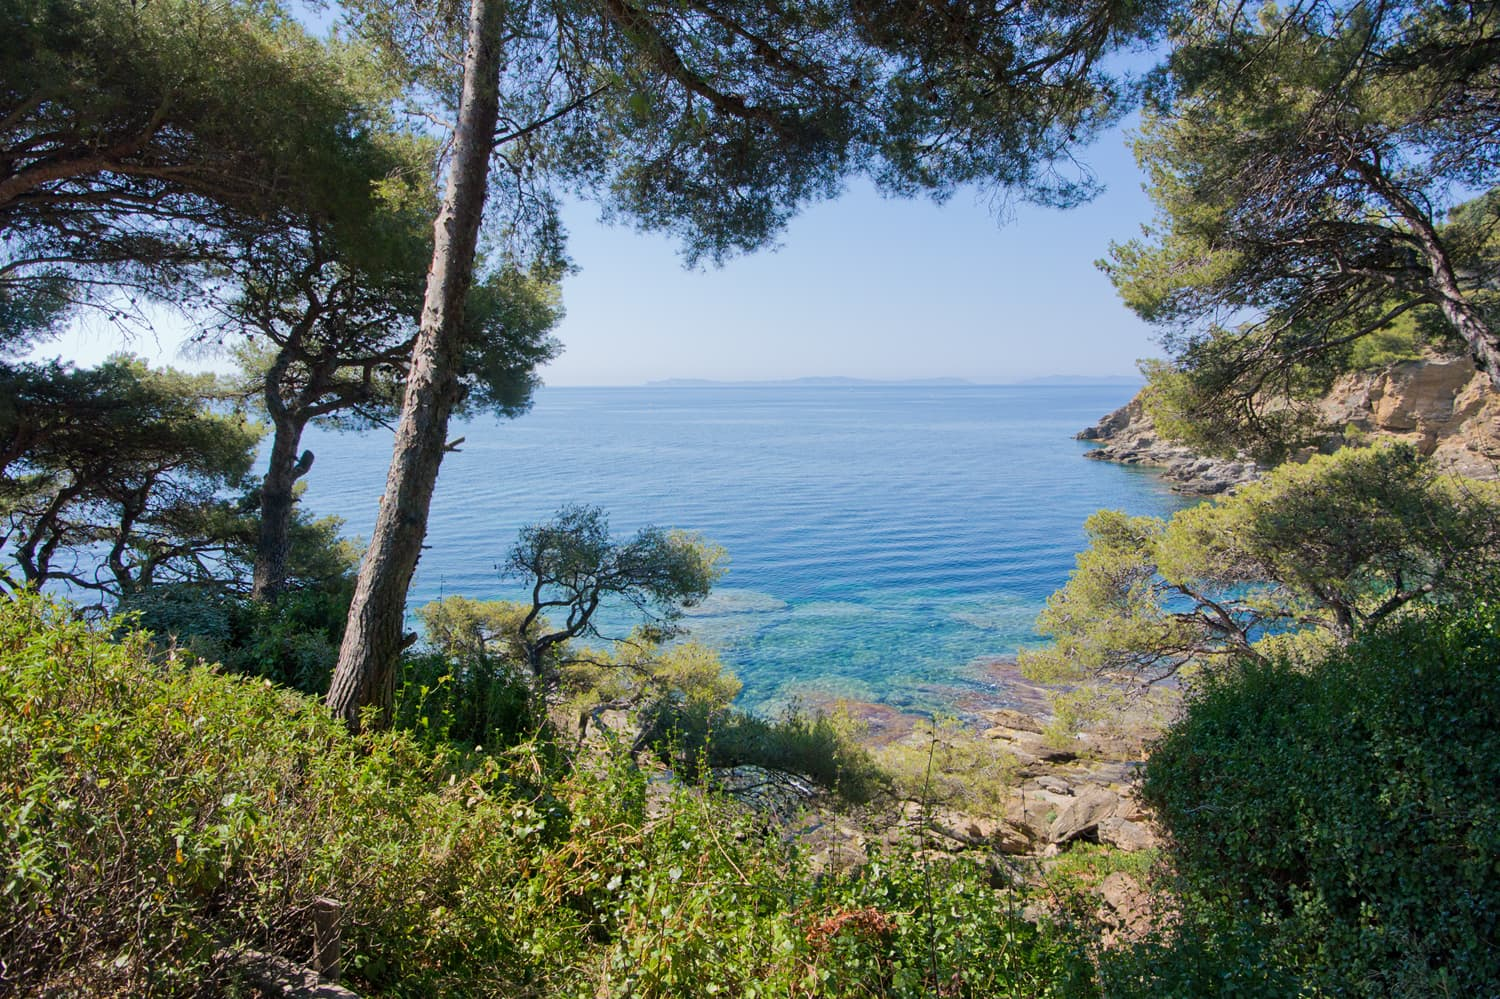 Mediterranean Sea views